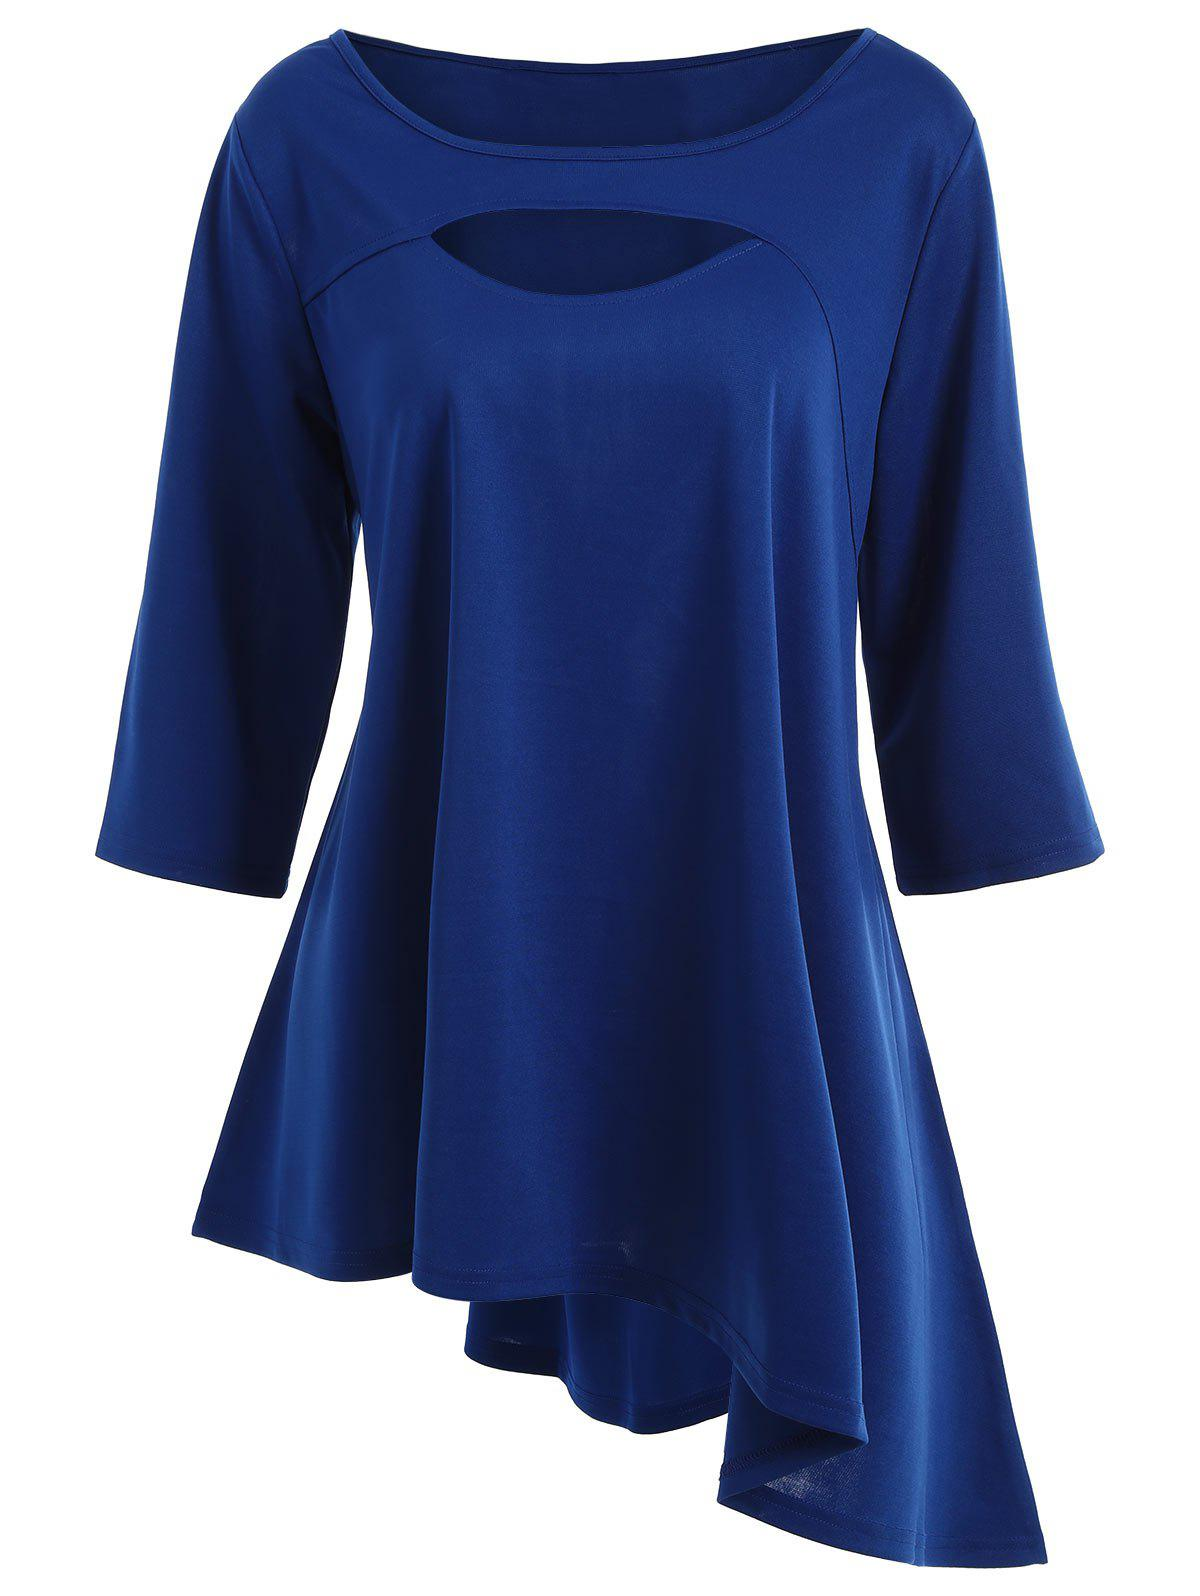 Long Plus Size Cut Out Asymmetric TeeWOMEN<br><br>Size: 4XL; Color: BLUE; Material: Polyester; Shirt Length: Long; Sleeve Length: Three Quarter; Collar: Round Neck; Style: Casual; Season: Fall,Spring; Pattern Type: Solid; Weight: 0.3700kg; Package Contents: 1 x Tee;